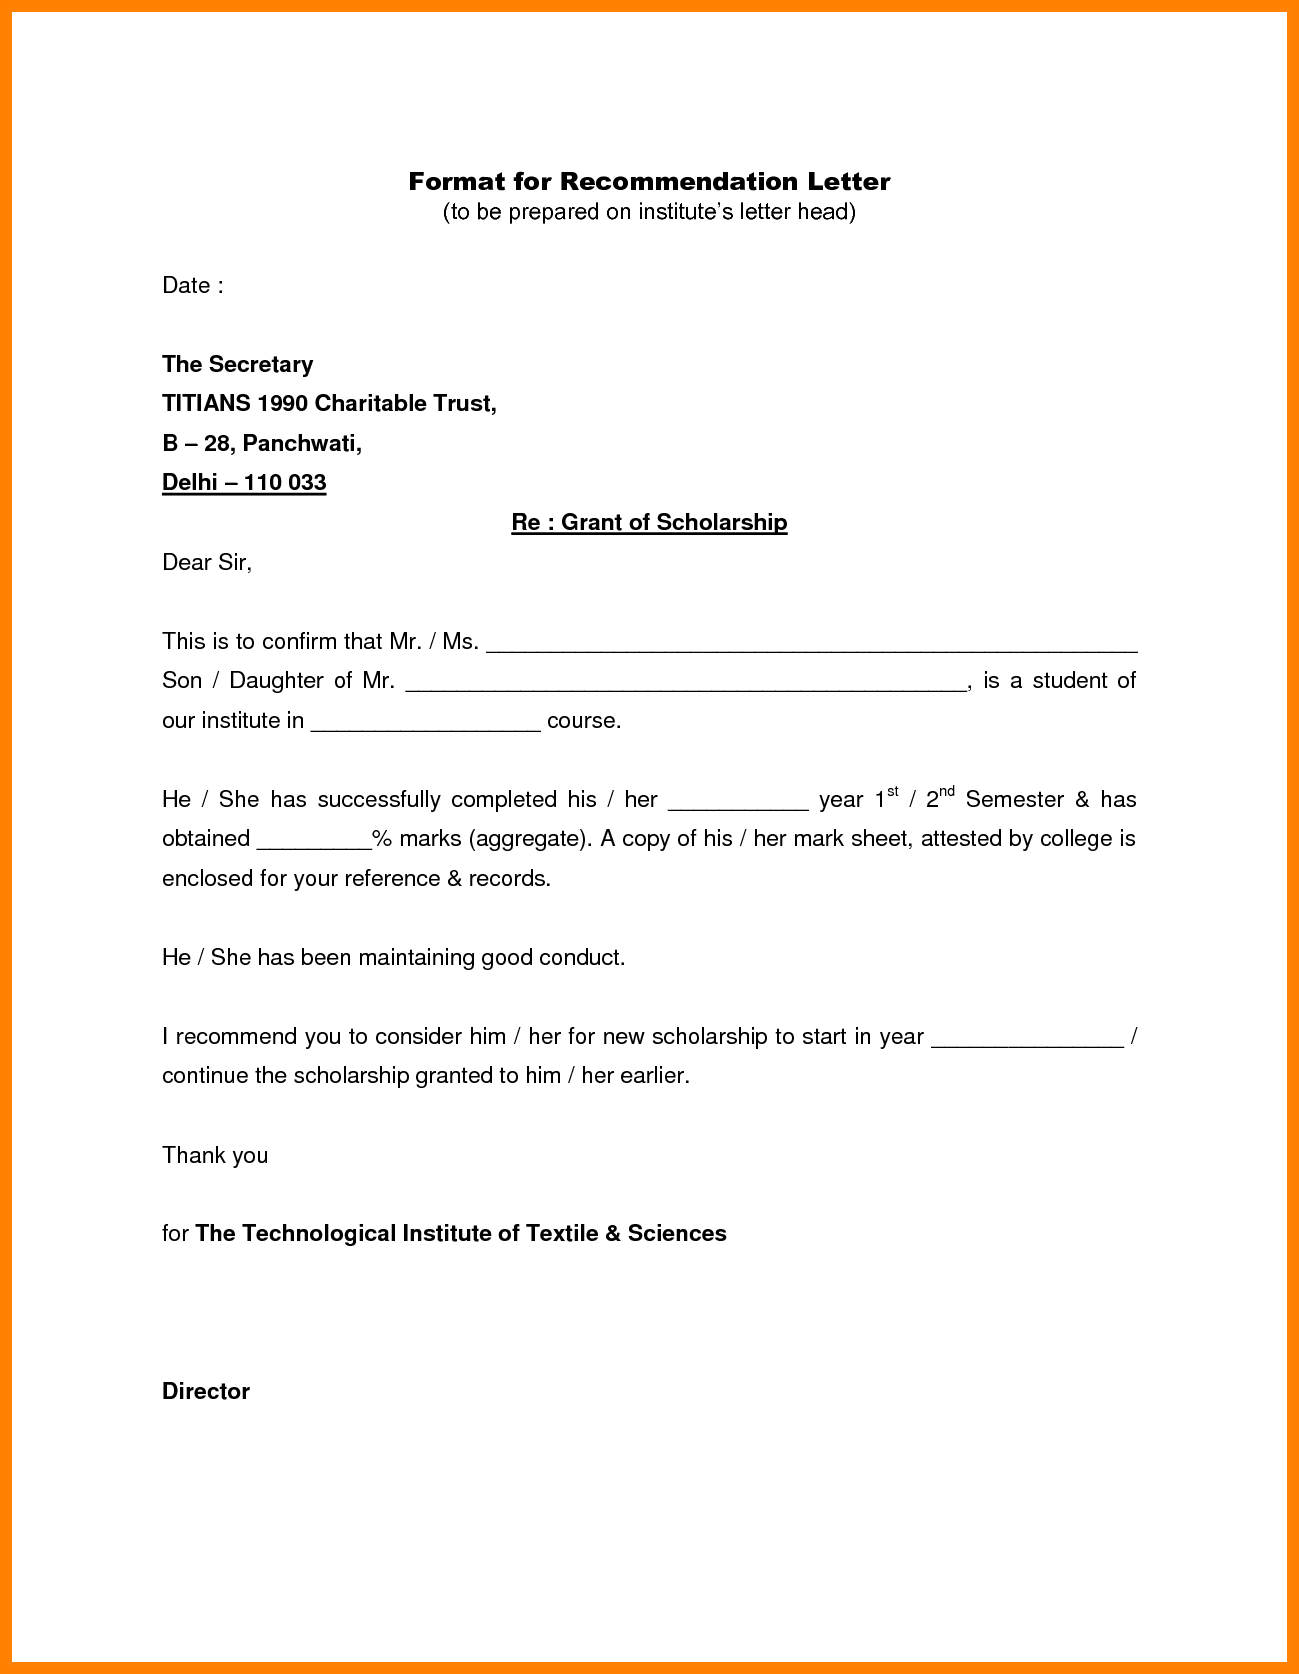 How to Write a Recommendation Letter [Sample Templates] | Site